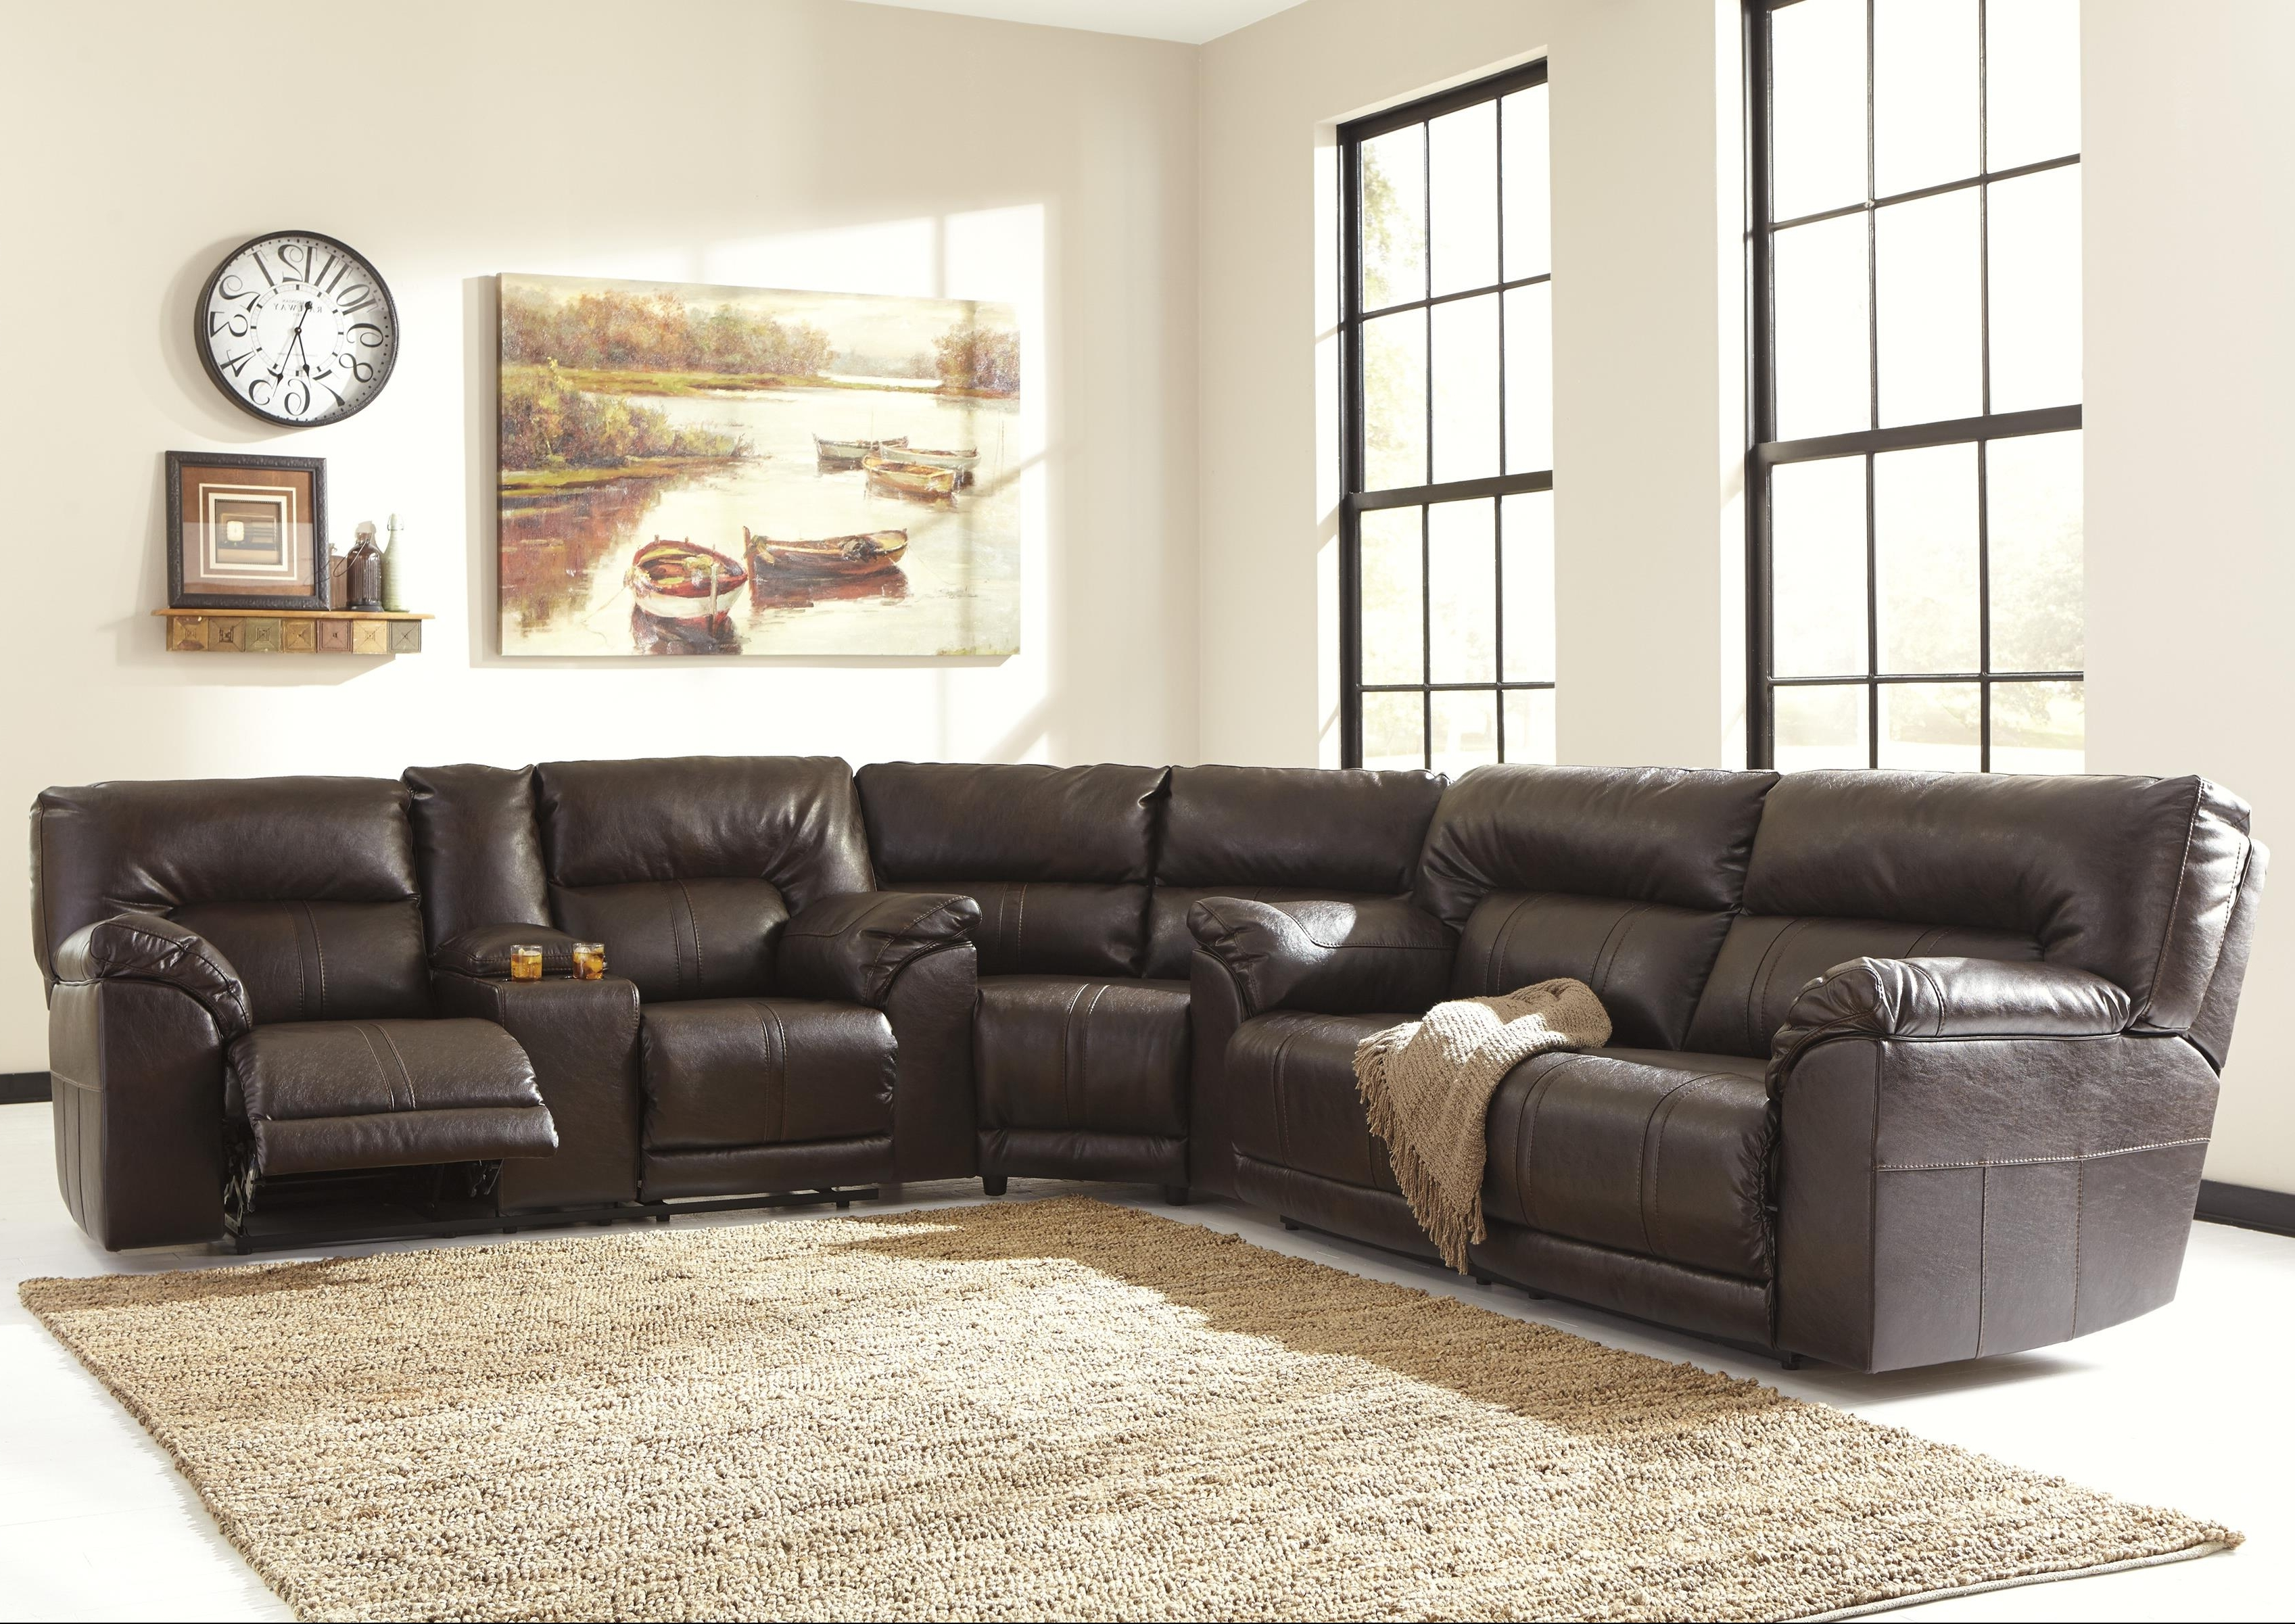 Wolf And Gardiner Wolf Regarding Most Popular Nashville Sectional Sofas (View 19 of 20)